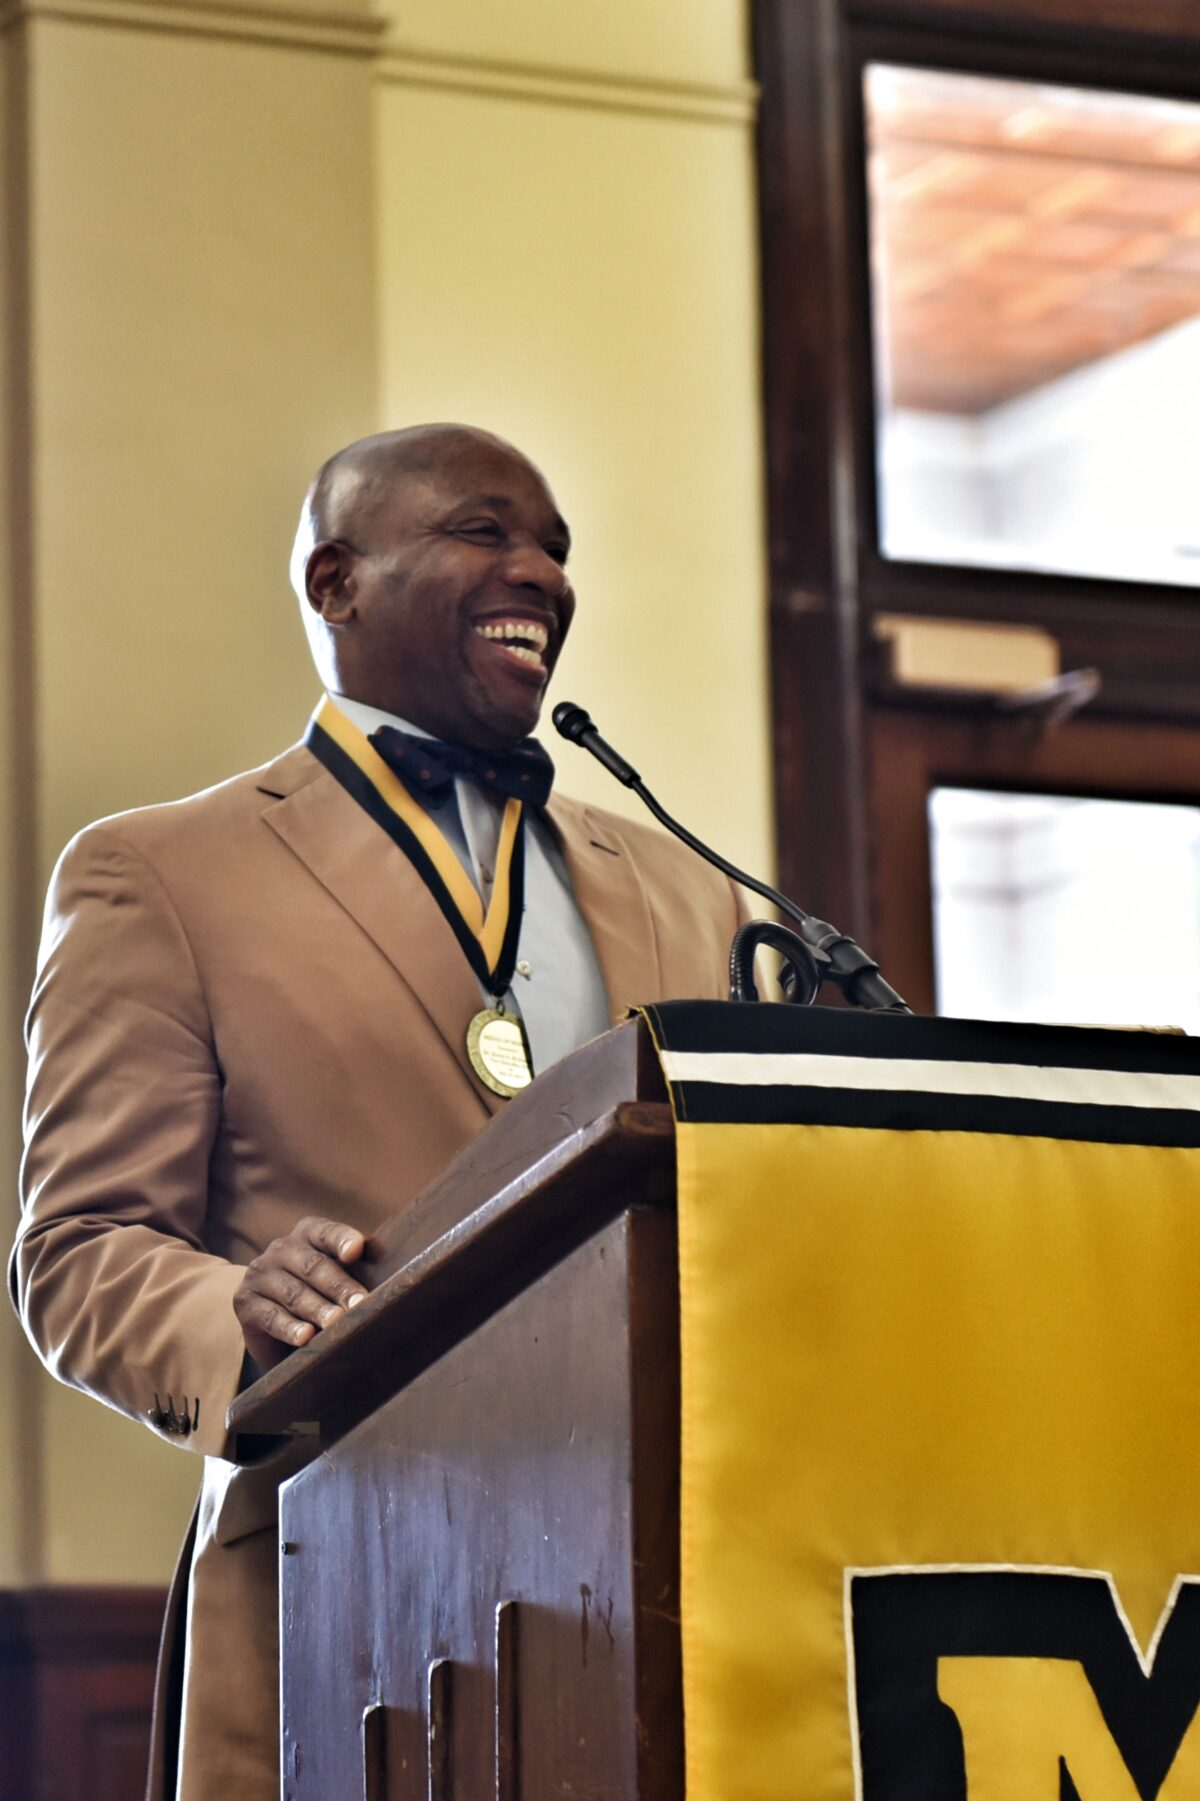 McDonald shares a laugh with the audience during his speech.